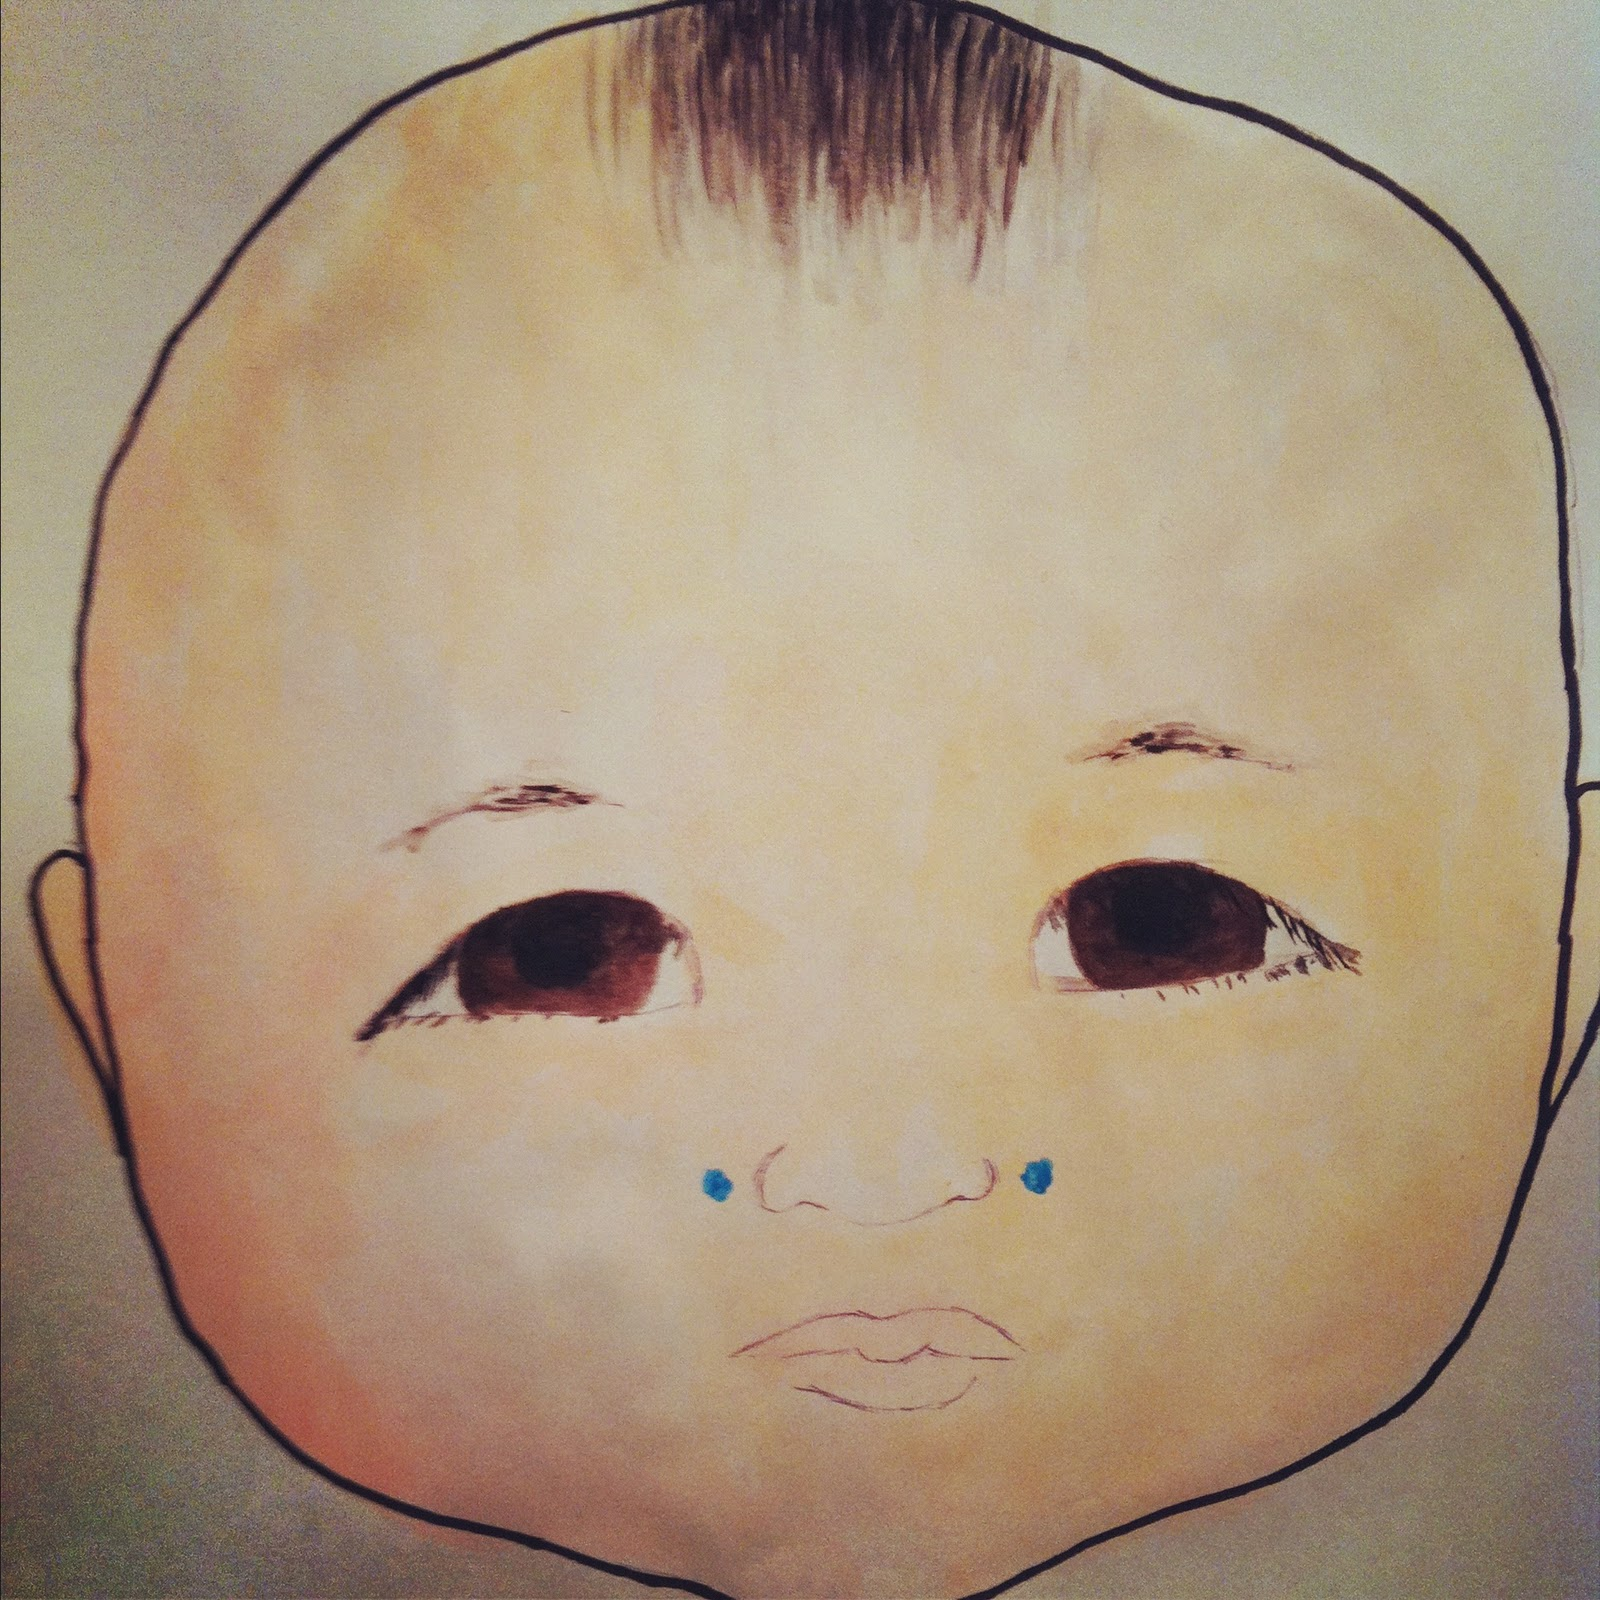 Tripis baby tips and tricks 5 tips for infant acupressure points sometimes even though your baby seems to be fully recovered from an illness a nagging cough will keep bothering your little snuffleupagus ccuart Image collections